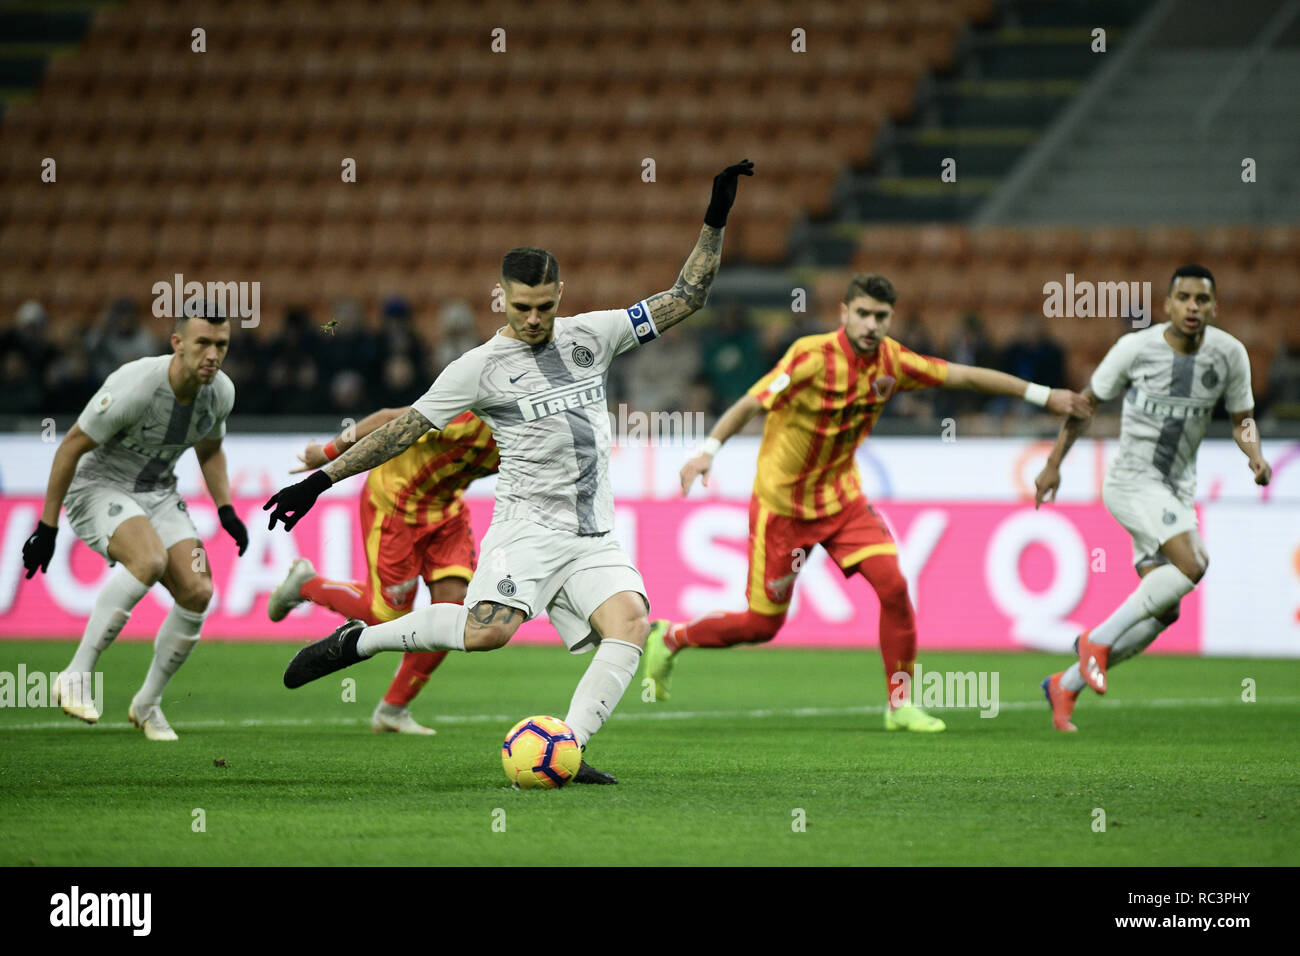 Milan, Italy. 13th Jan 2019. Forward Mauro Icardi (Inter) scores a penalty during the Italian Cup 'Coppa Italia' football match, Inter Milan vs Benevento Calcio at San Siro Meazza Stadium in Milan, Italy on 13 January 2019. The football match is played behind closed doors after Napoli's Senegalese player Kalidou Koulibaly was subject to racist chants by FC Internazionale's 'ultra' fans during the Boxing Day match. Credit: Piero Cruciatti/Alamy Live News - Stock Image